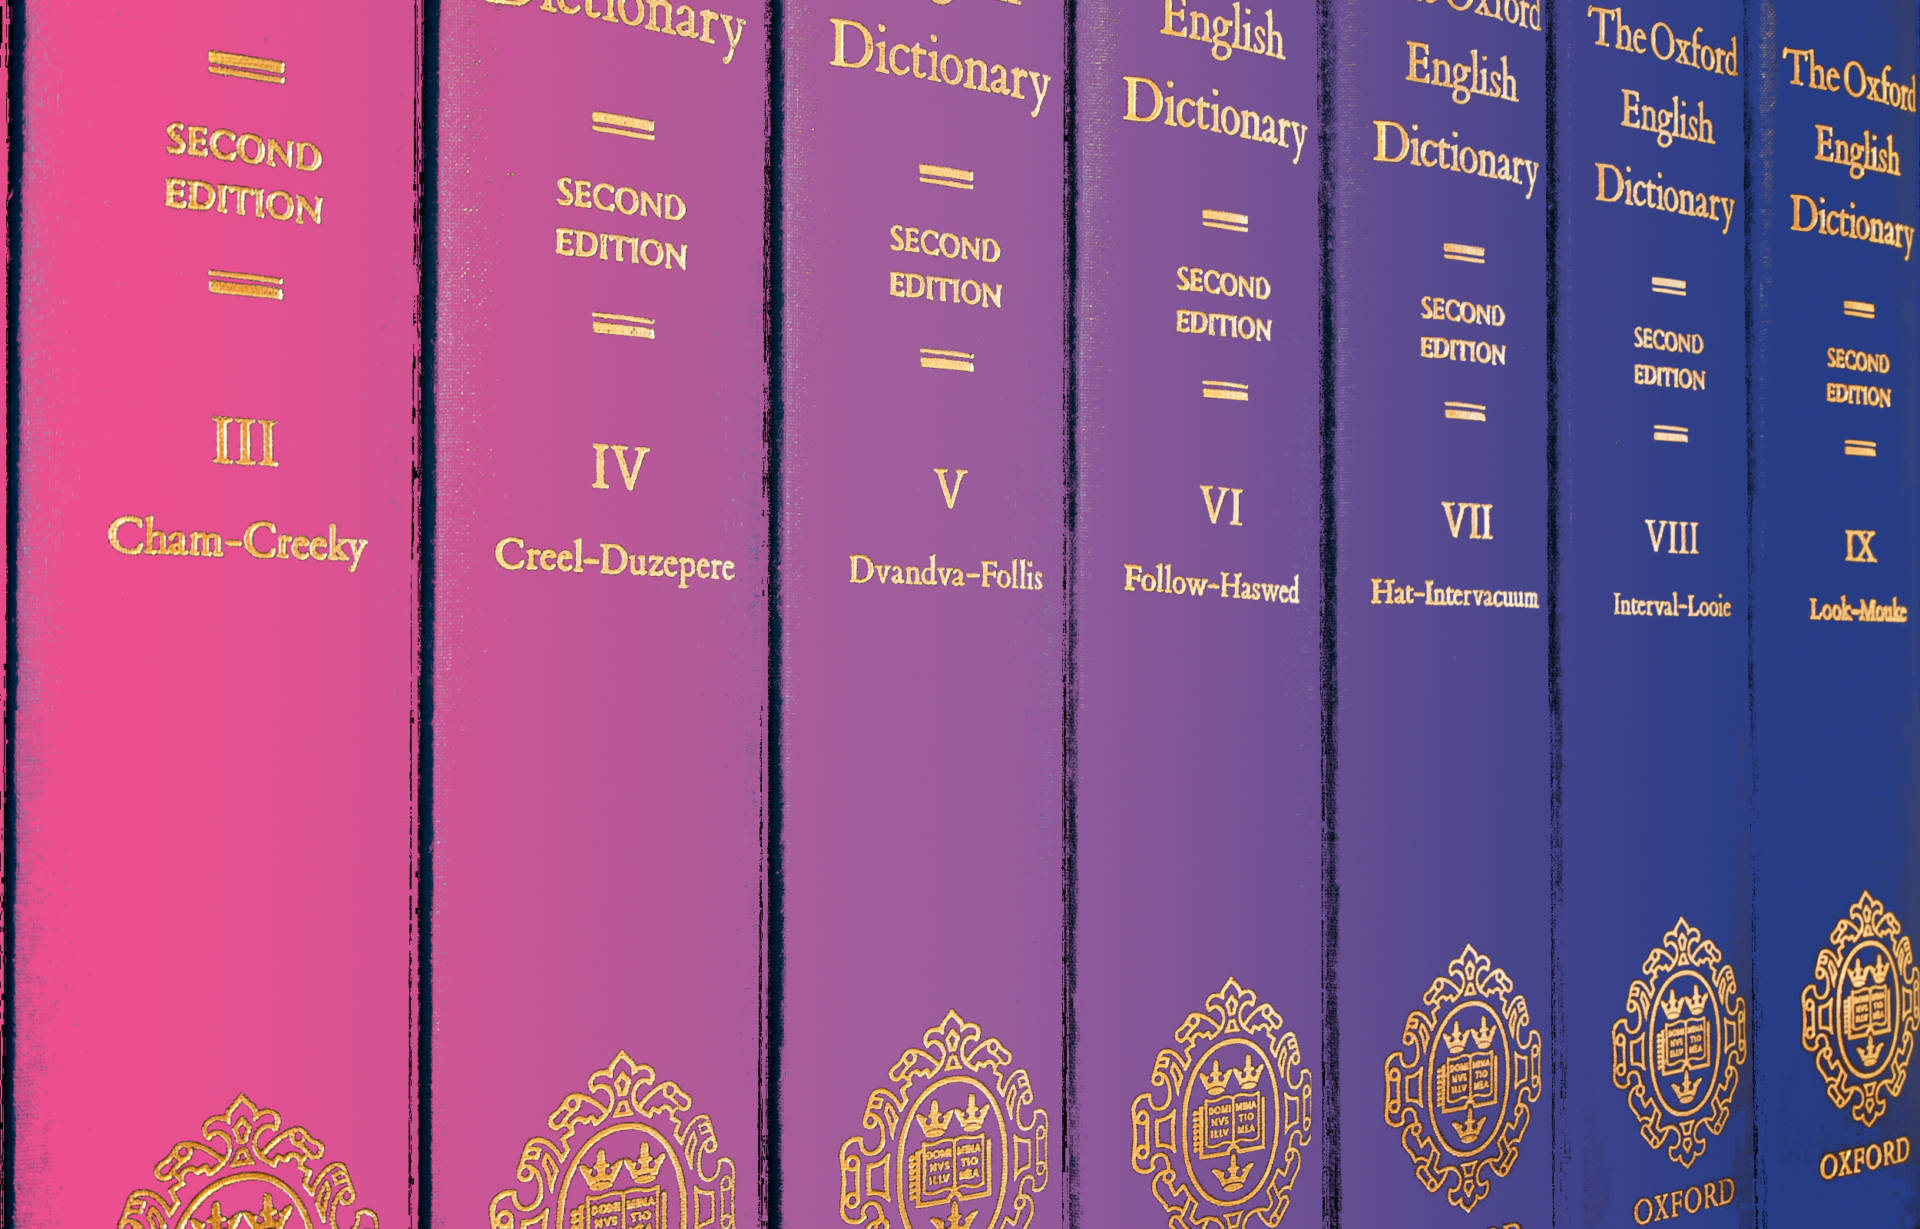 Photo collage by Ingrid Rojas Contreras. The Oxford English Dictionary. Wikimedia commons.